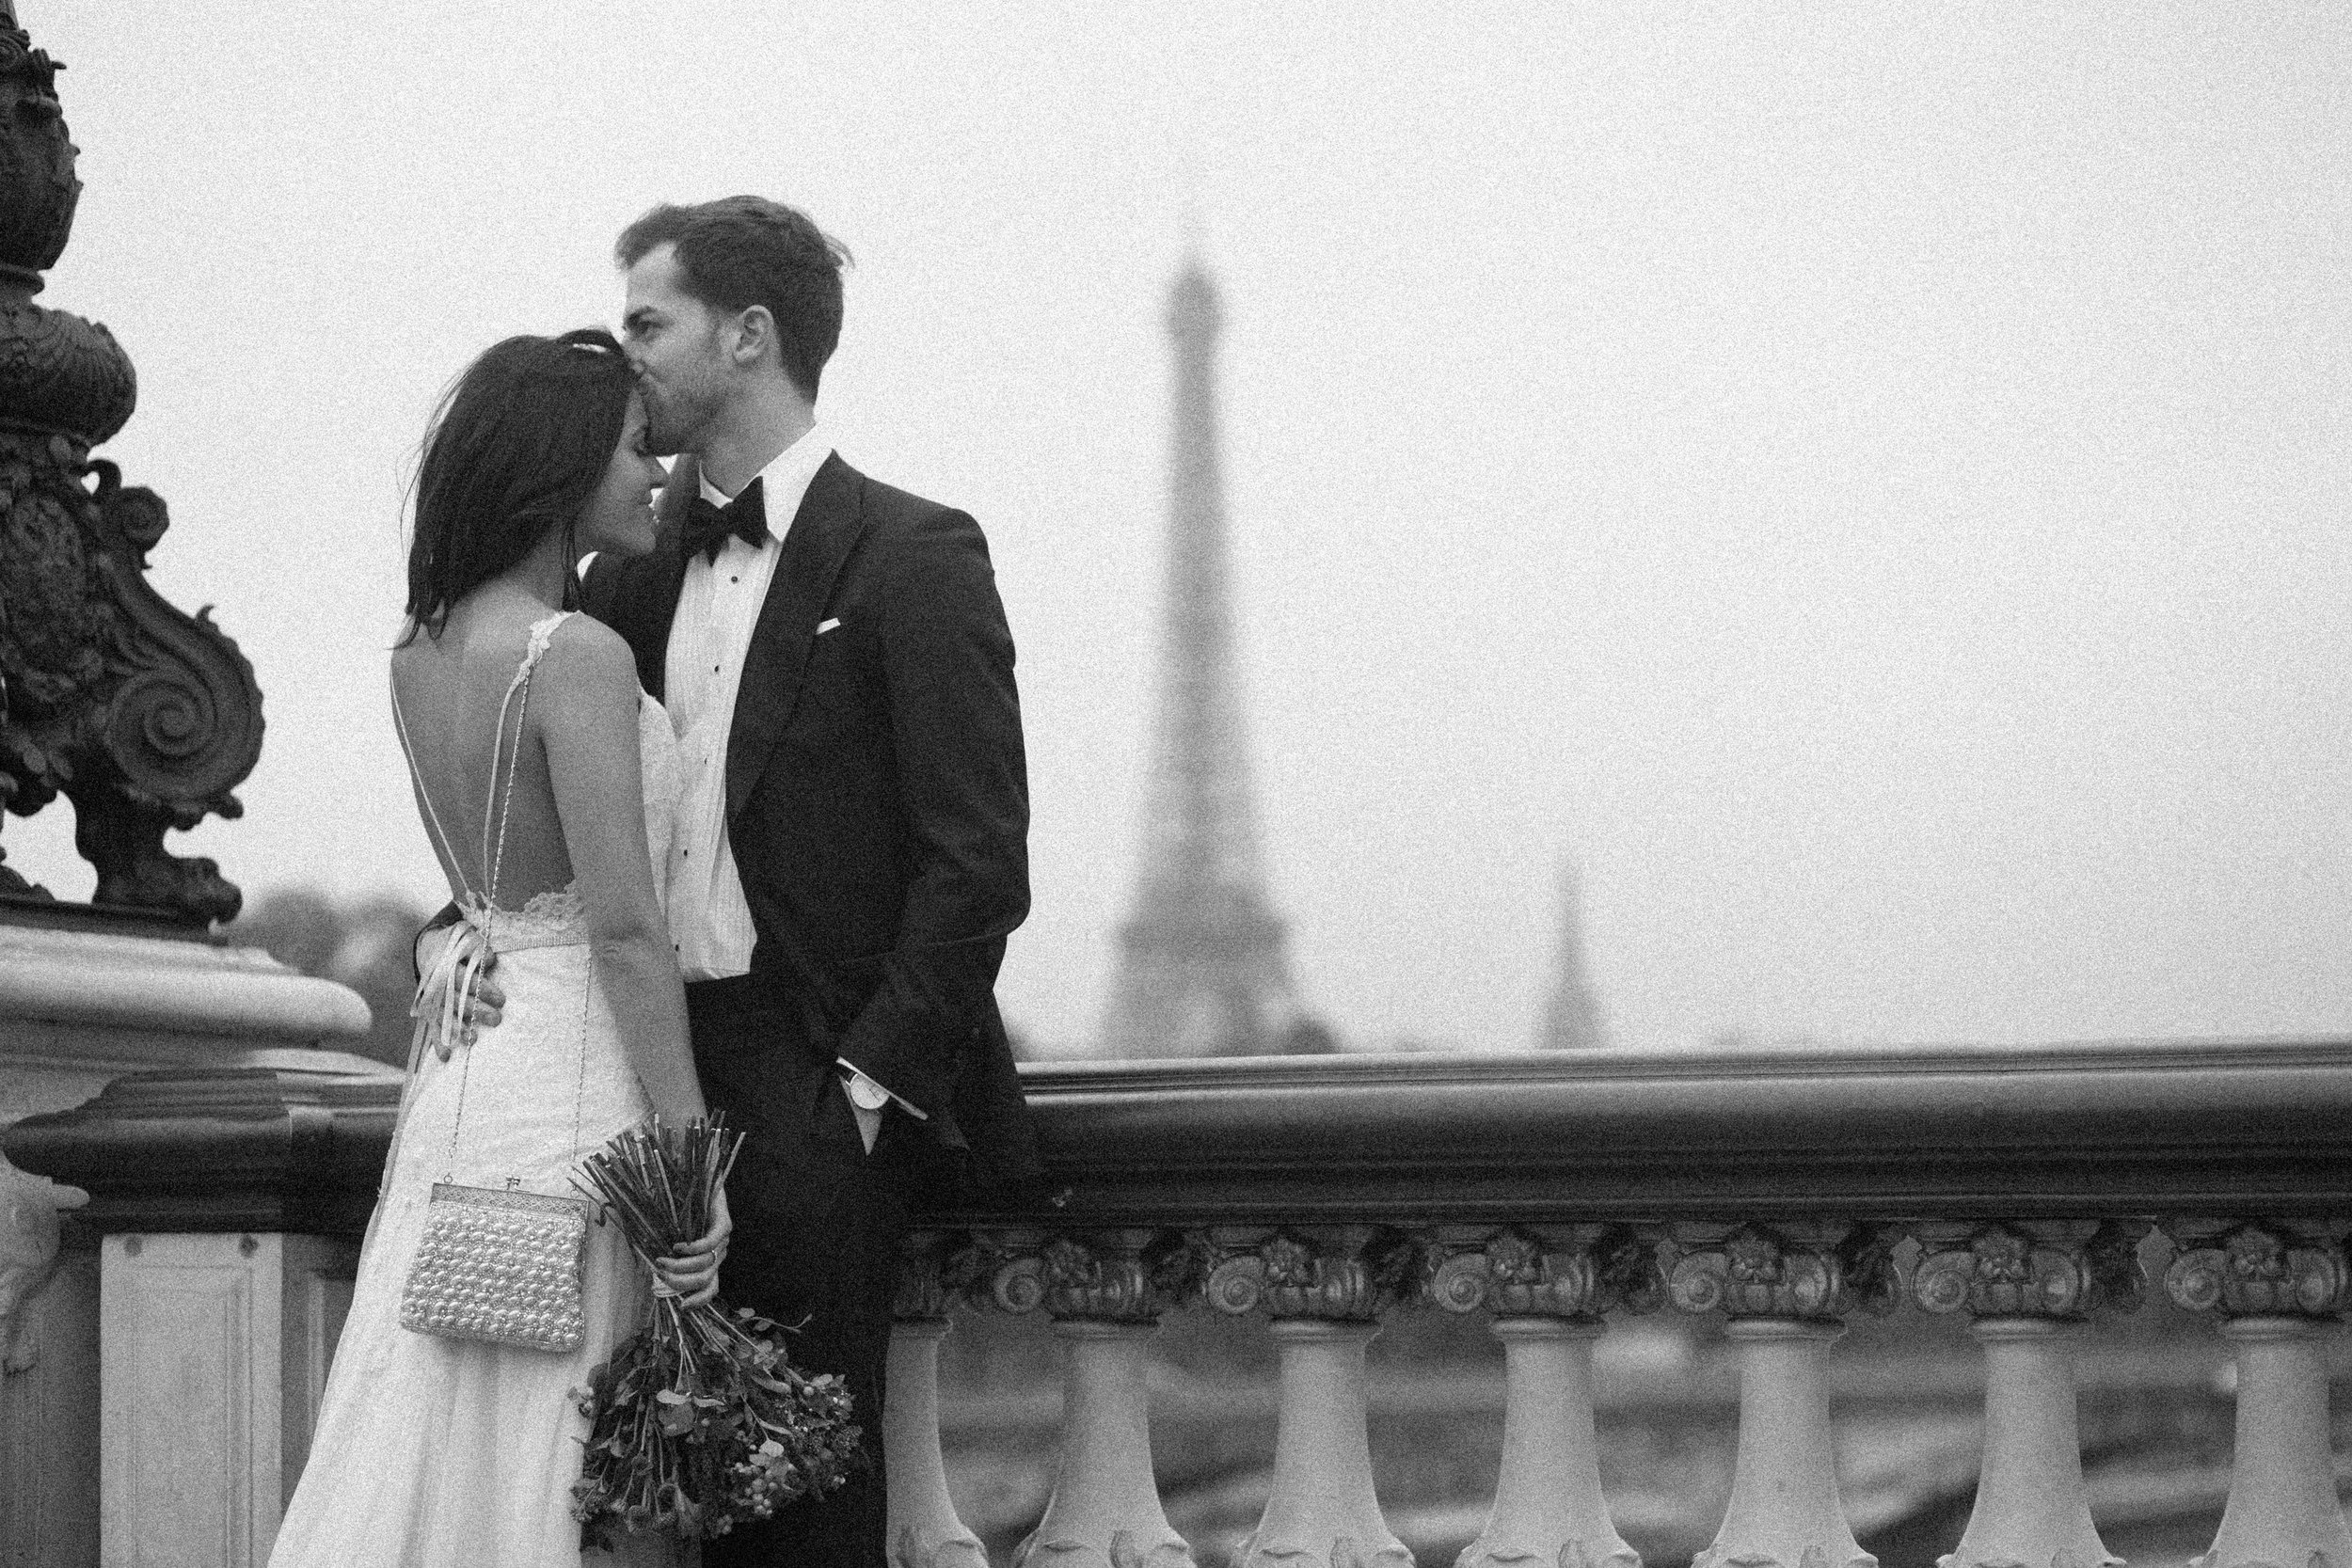 paris wedding photographer craig george hannah and mitch elopment-47.jpg